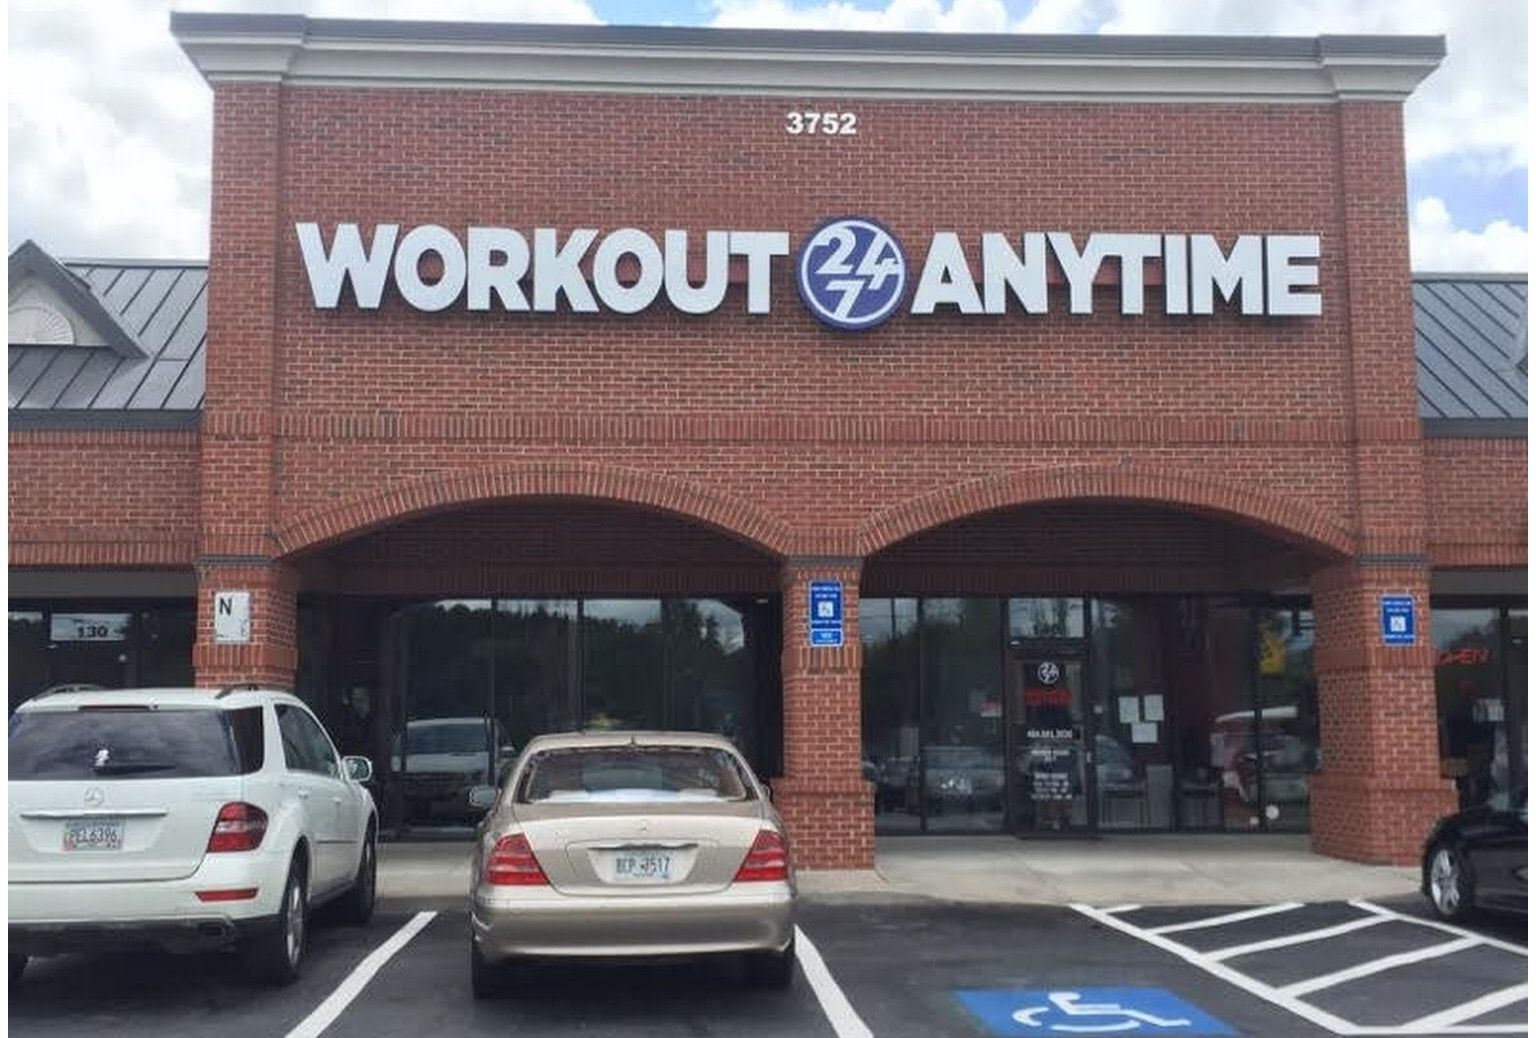 Workout Anytime Cascade Atlanta Georgia Free Wi Fi Hydromassage Certified Personal Trainers Re Anytime Fitness Trx Suspension Training Fitness Center Gym